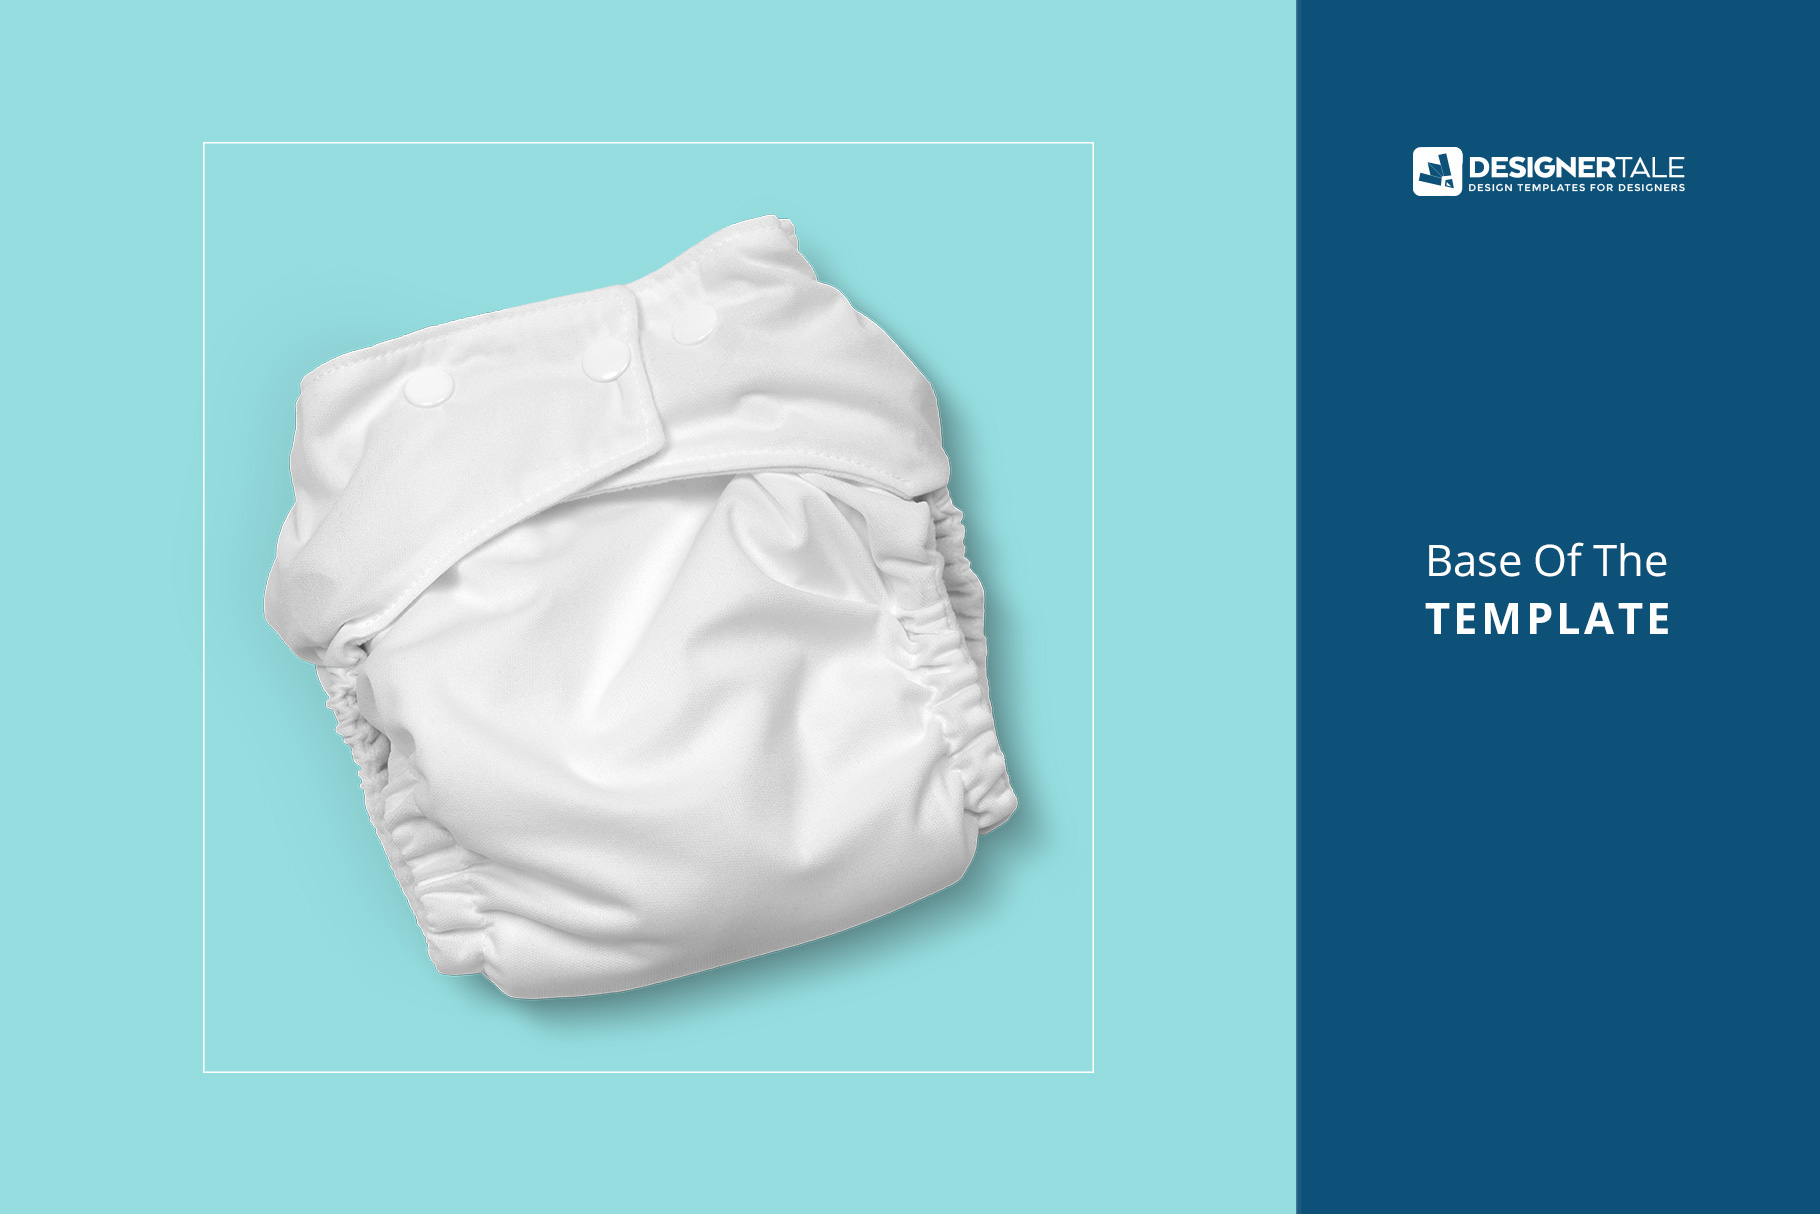 base inage of the reusable cloth diaper mockup